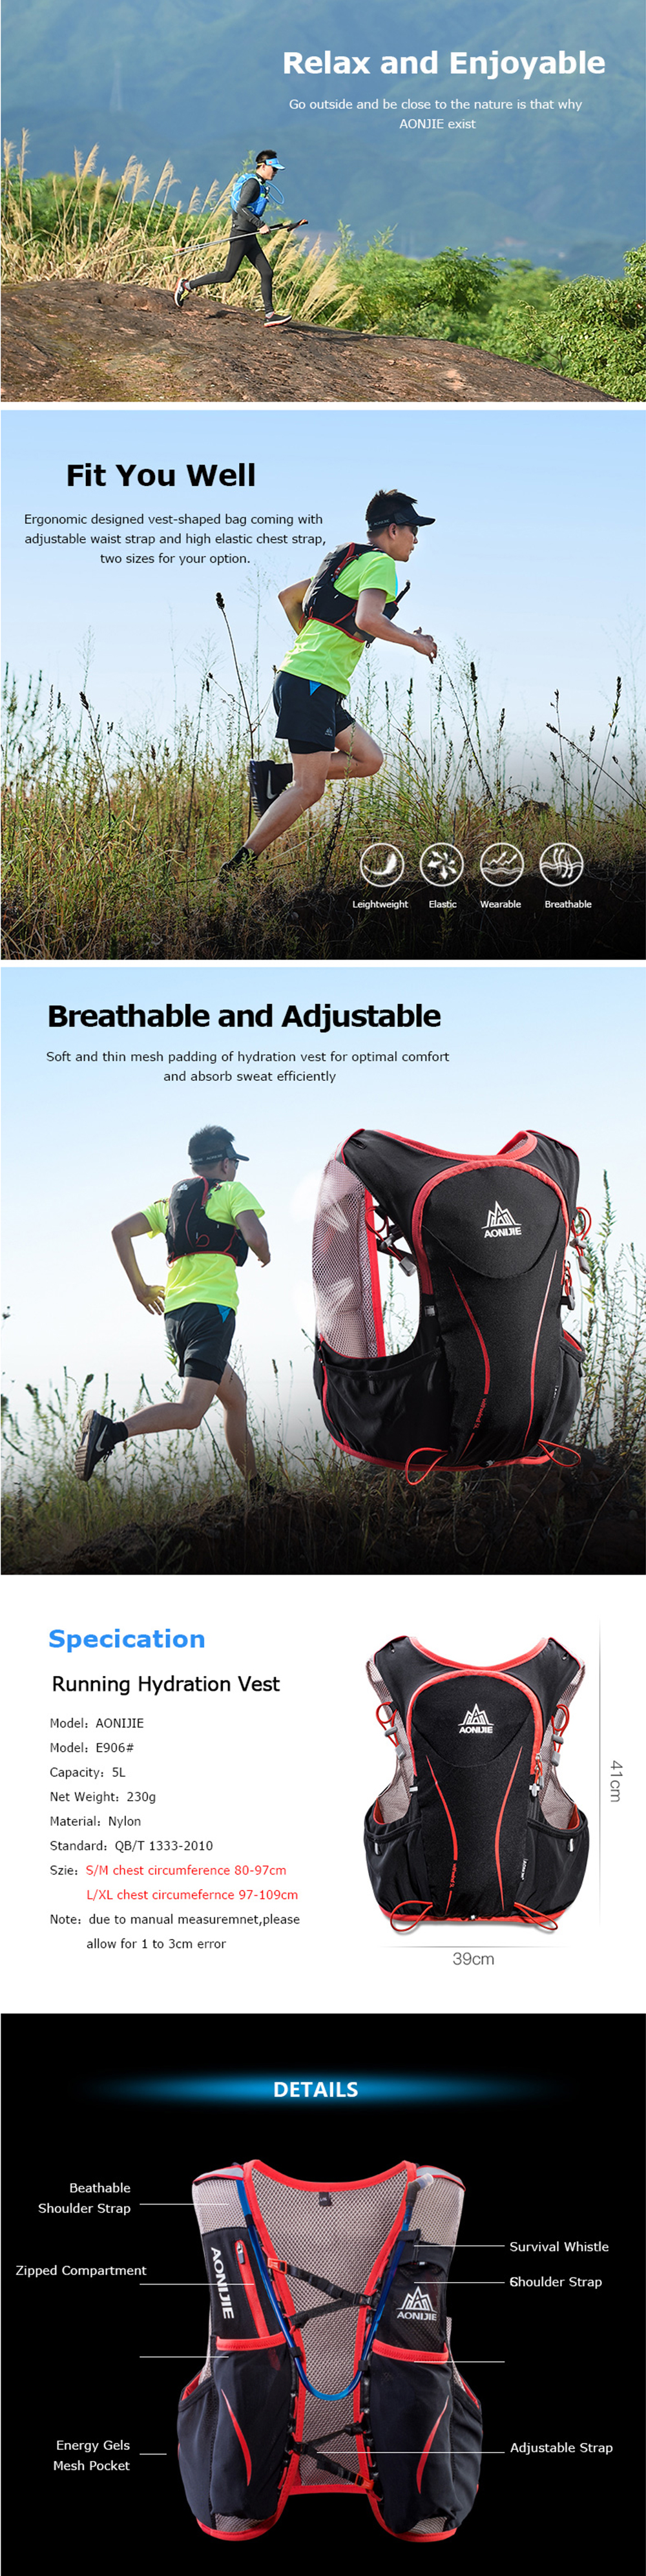 AONIJIE-E906-Hydration-Pack-Backpack-Rucksack-Bag_01